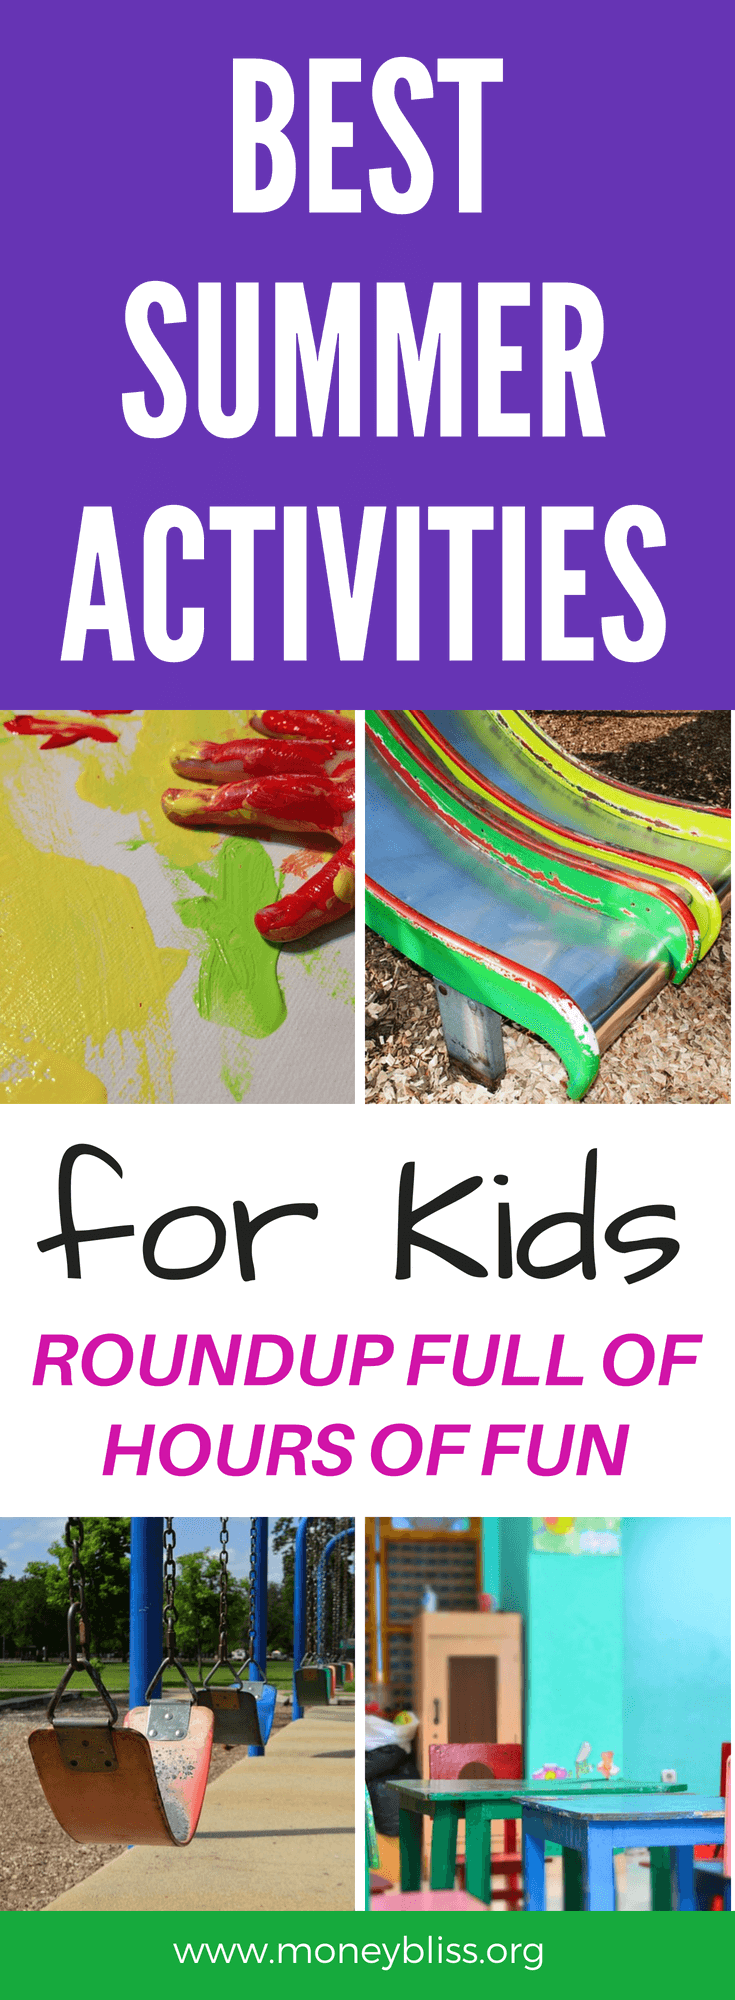 Be prepared for summer and bored kids. With this roundup, you will find plenty of activities to do in summer vacation. Find free activities for kids. Create memories with these summer activities for kids. #summer #activities #kids #roundup #free